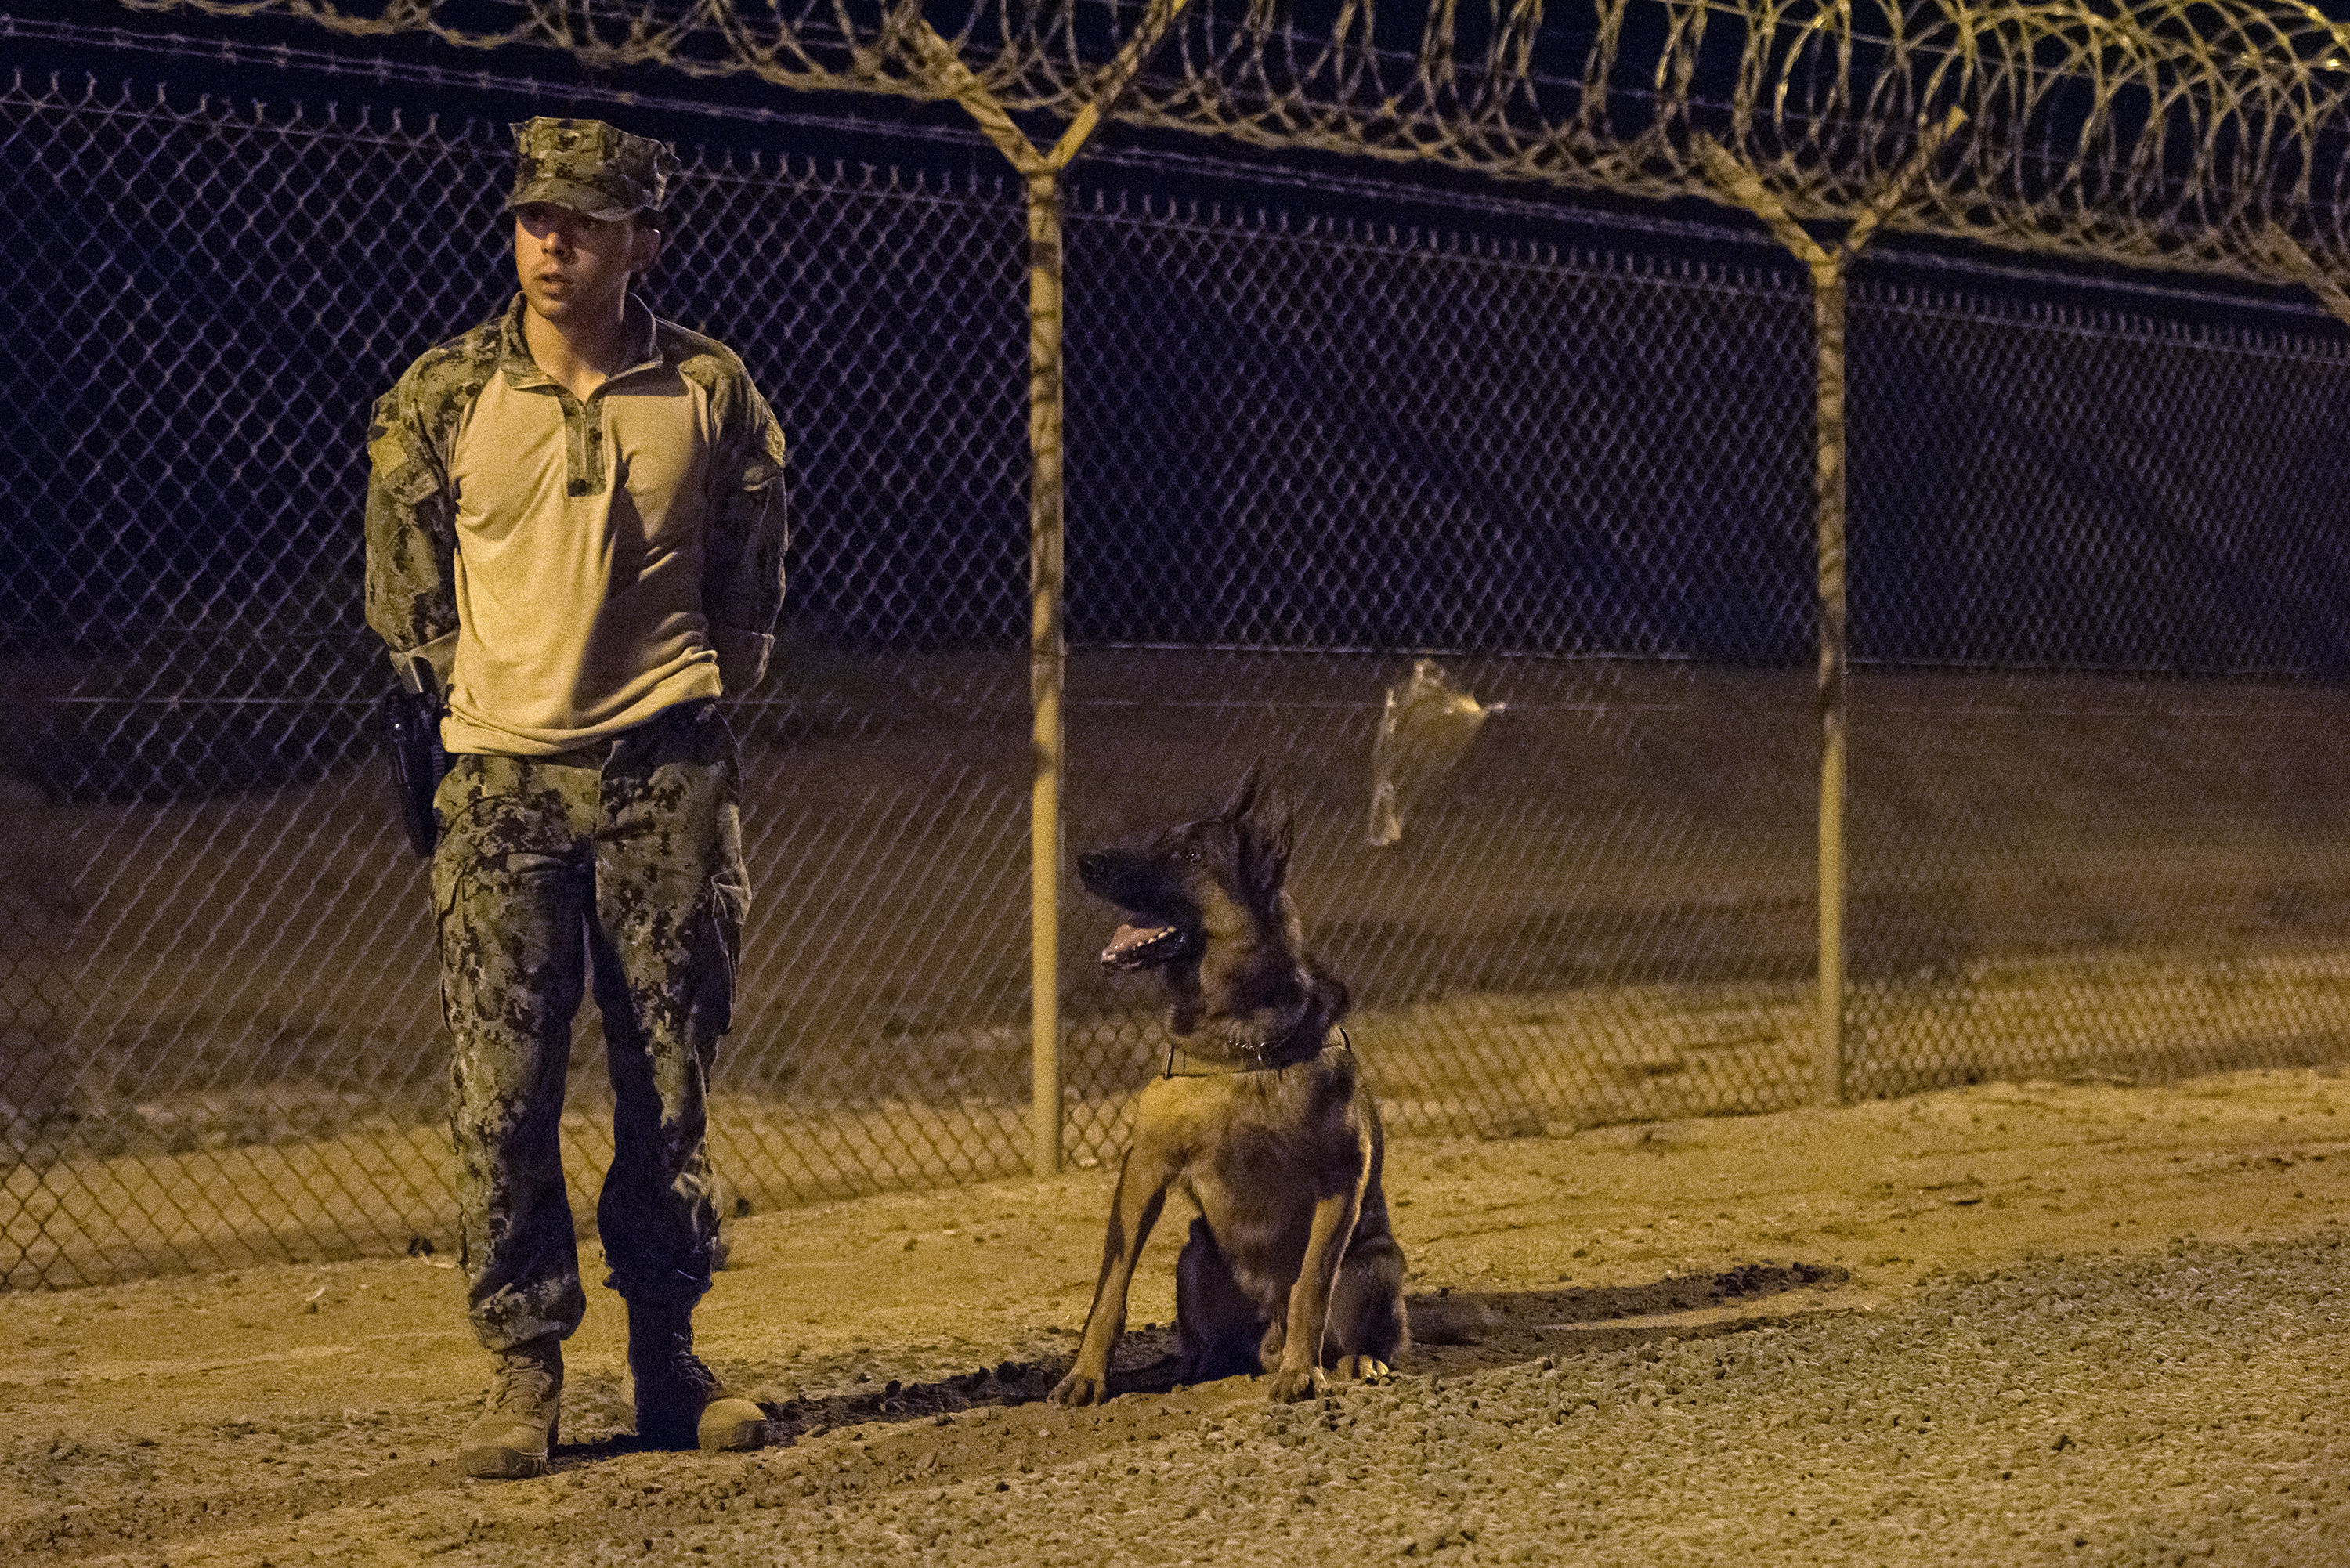 U.S. Navy Master-at-Arms 3rd Class Jordan Fuentes, a military working dog (MWD) handler and MWD Rex conduct proficiency training on Camp Lemonnier, Djibouti, July 31, 2018. Military Working Dogs can be used to perform searches, subdue suspects, and detect explosives and narcotics. (U.S. Air National Guard photo by Master Sgt. Sarah Mattison)